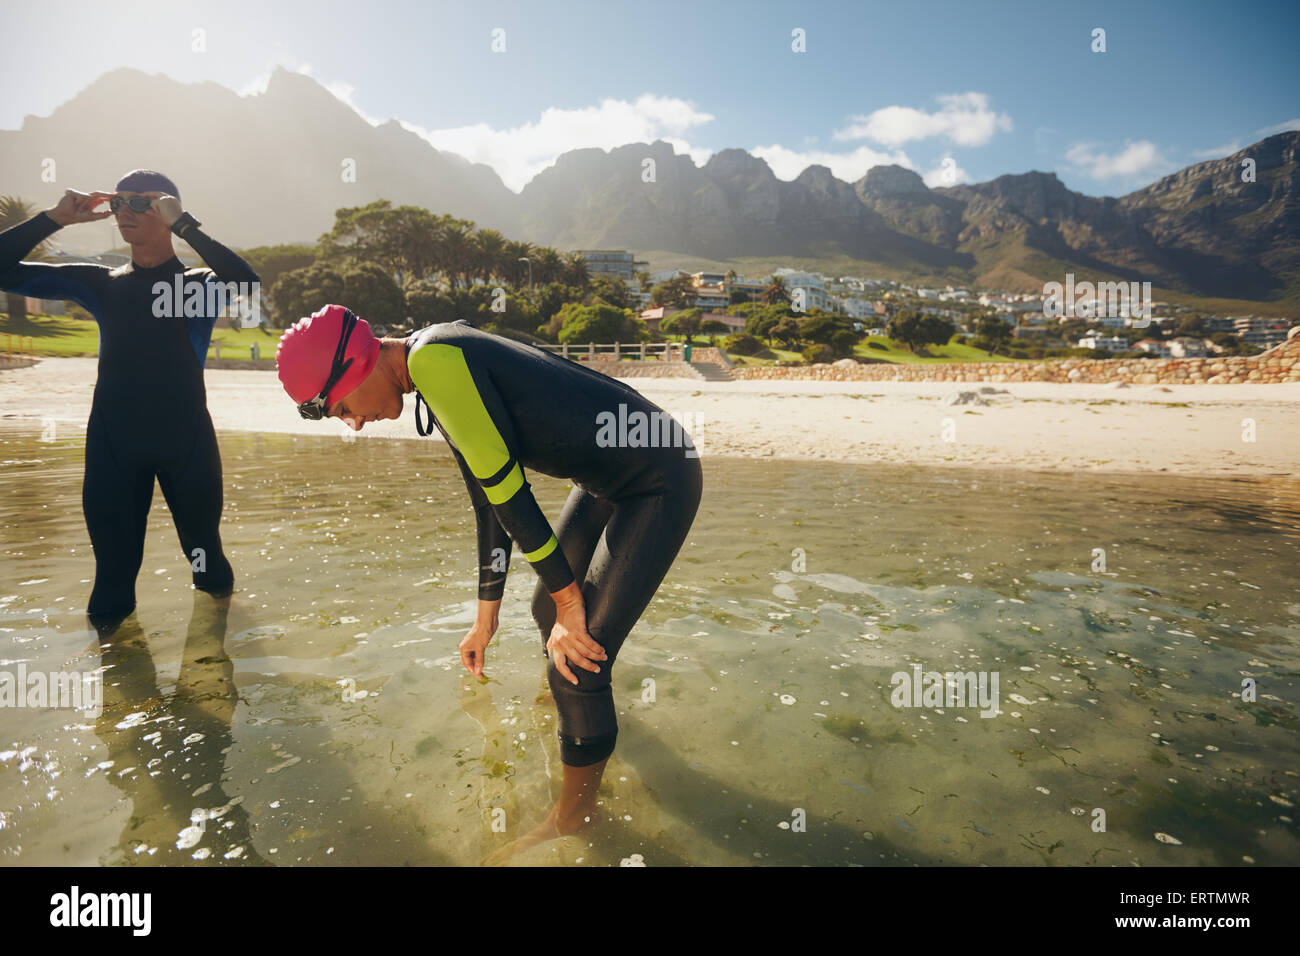 Athletes resting after triathlon training session. Young man and woman standing in water taking a break from practicing. - Stock Image